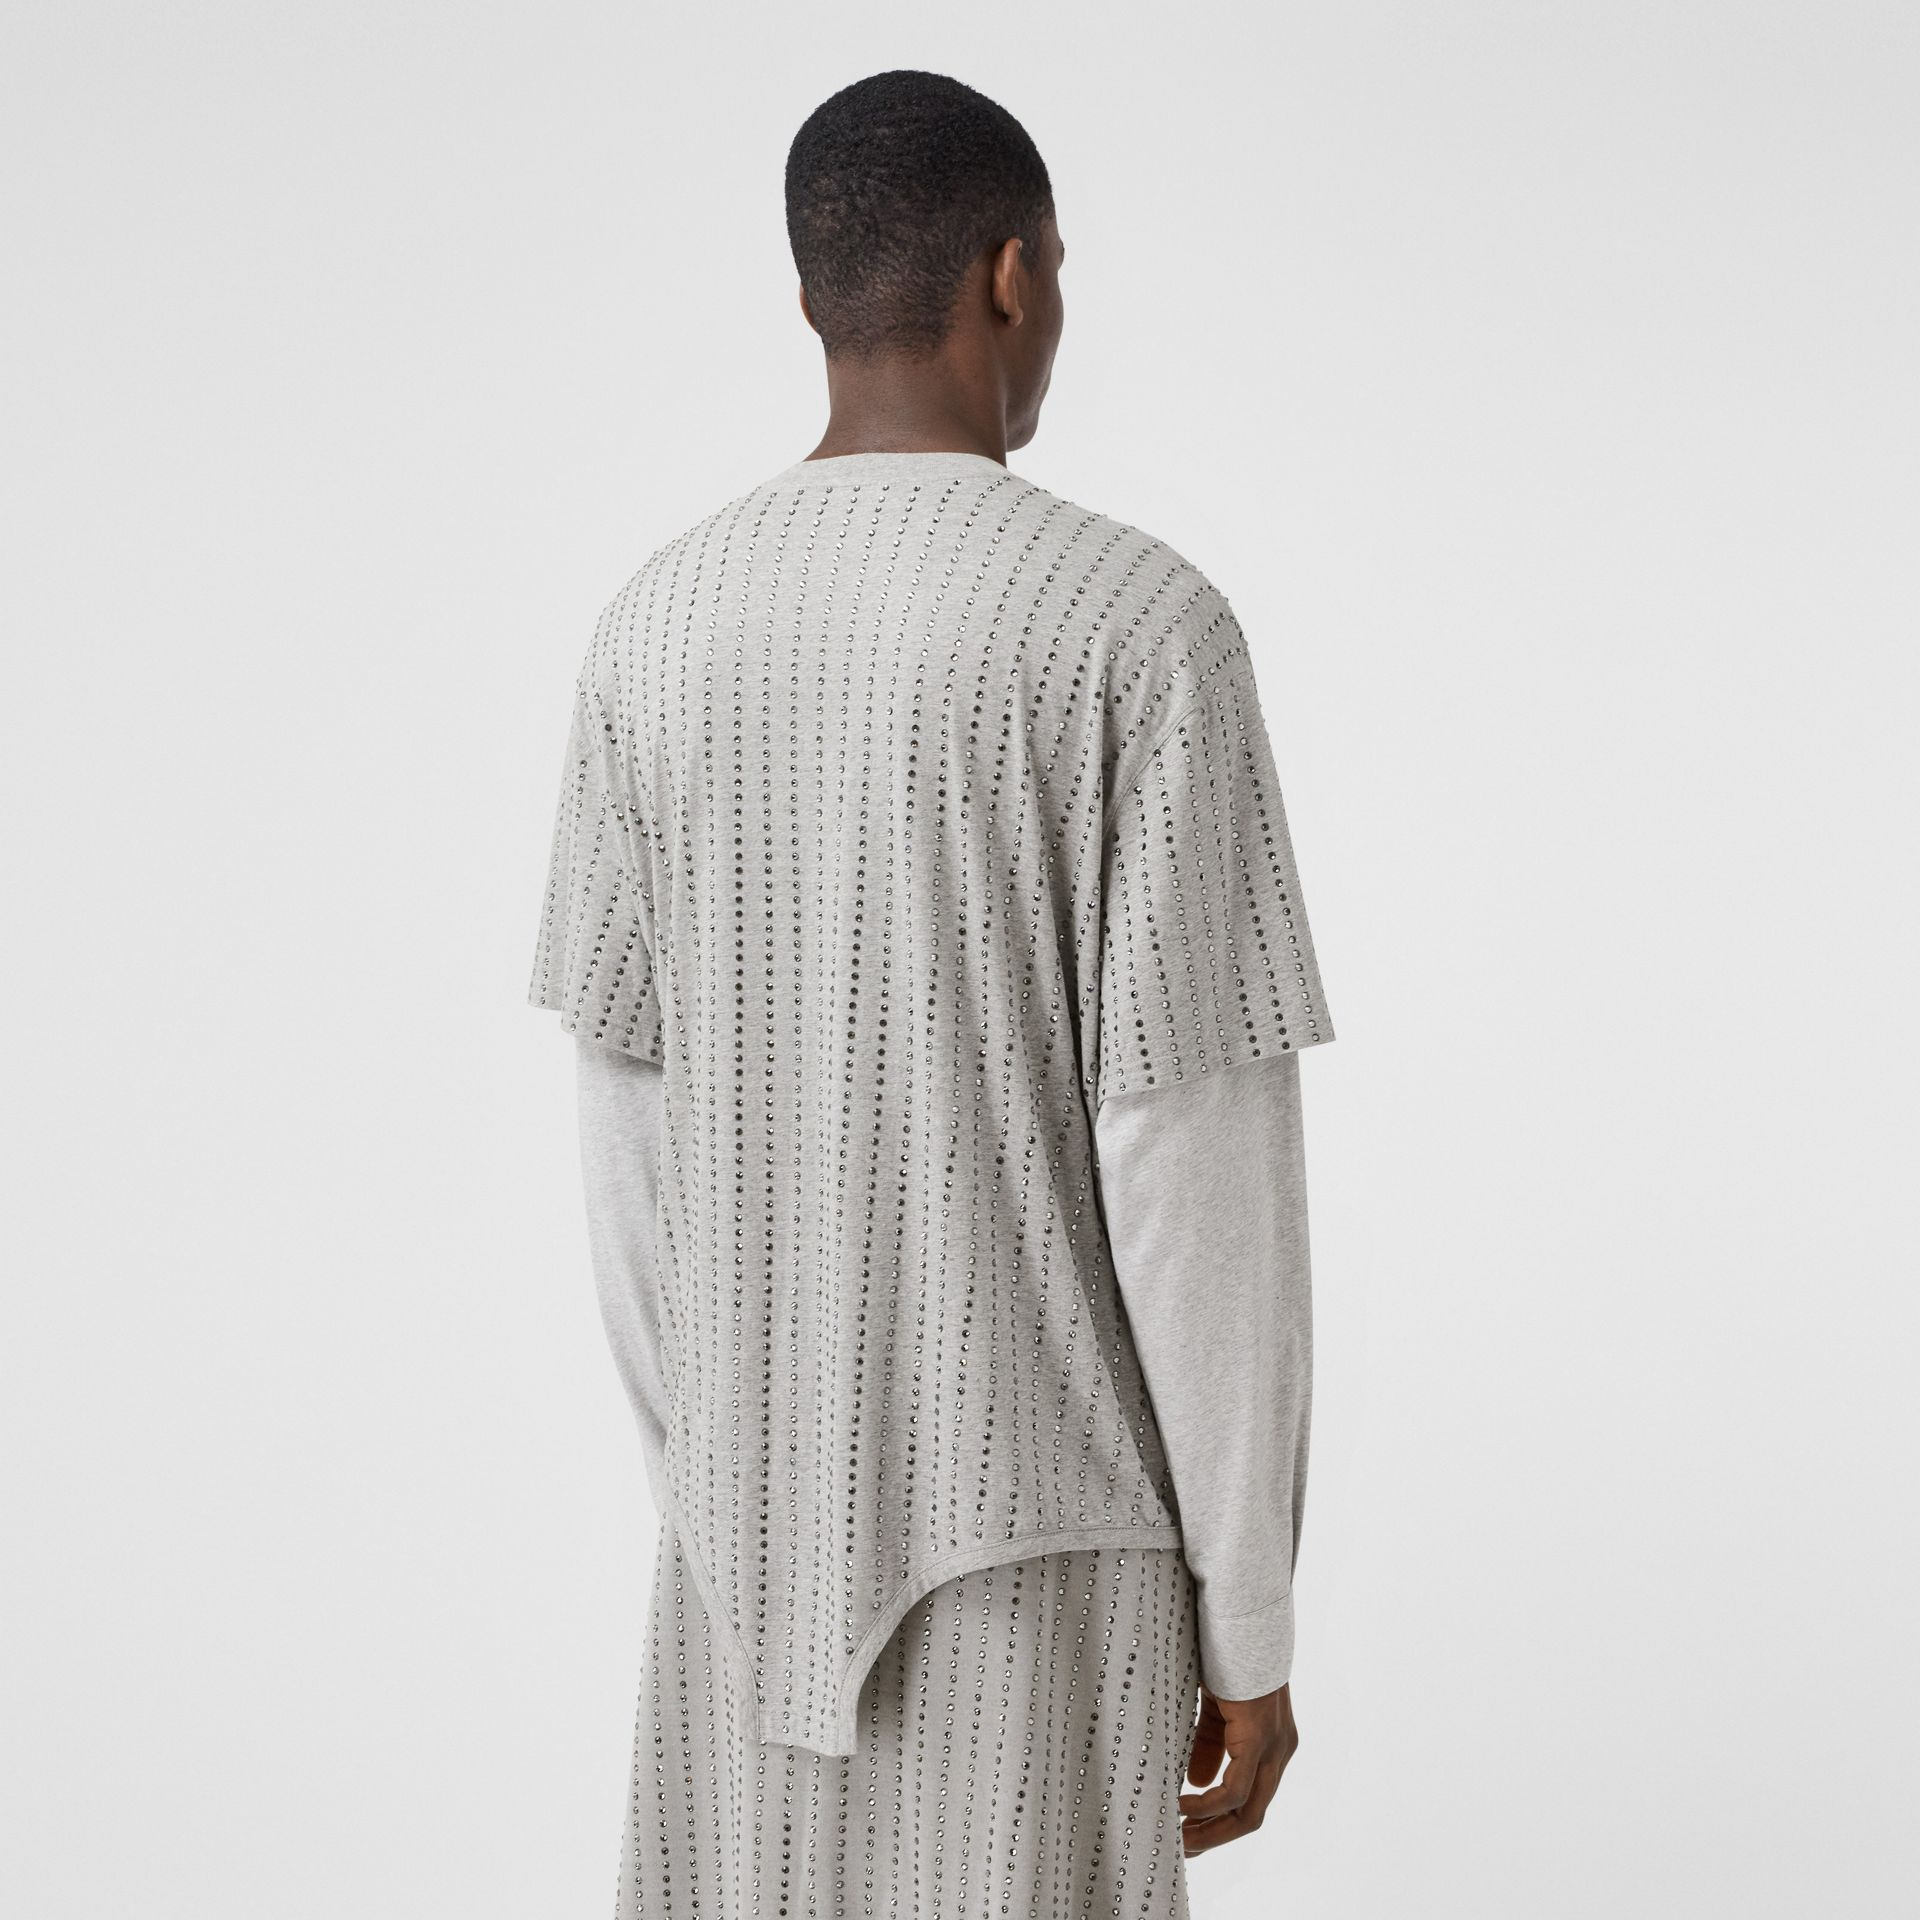 Cut-out Hem Crystal Pinstriped Cotton Oversized T-shirt in Cloud Grey | Burberry - gallery image 2